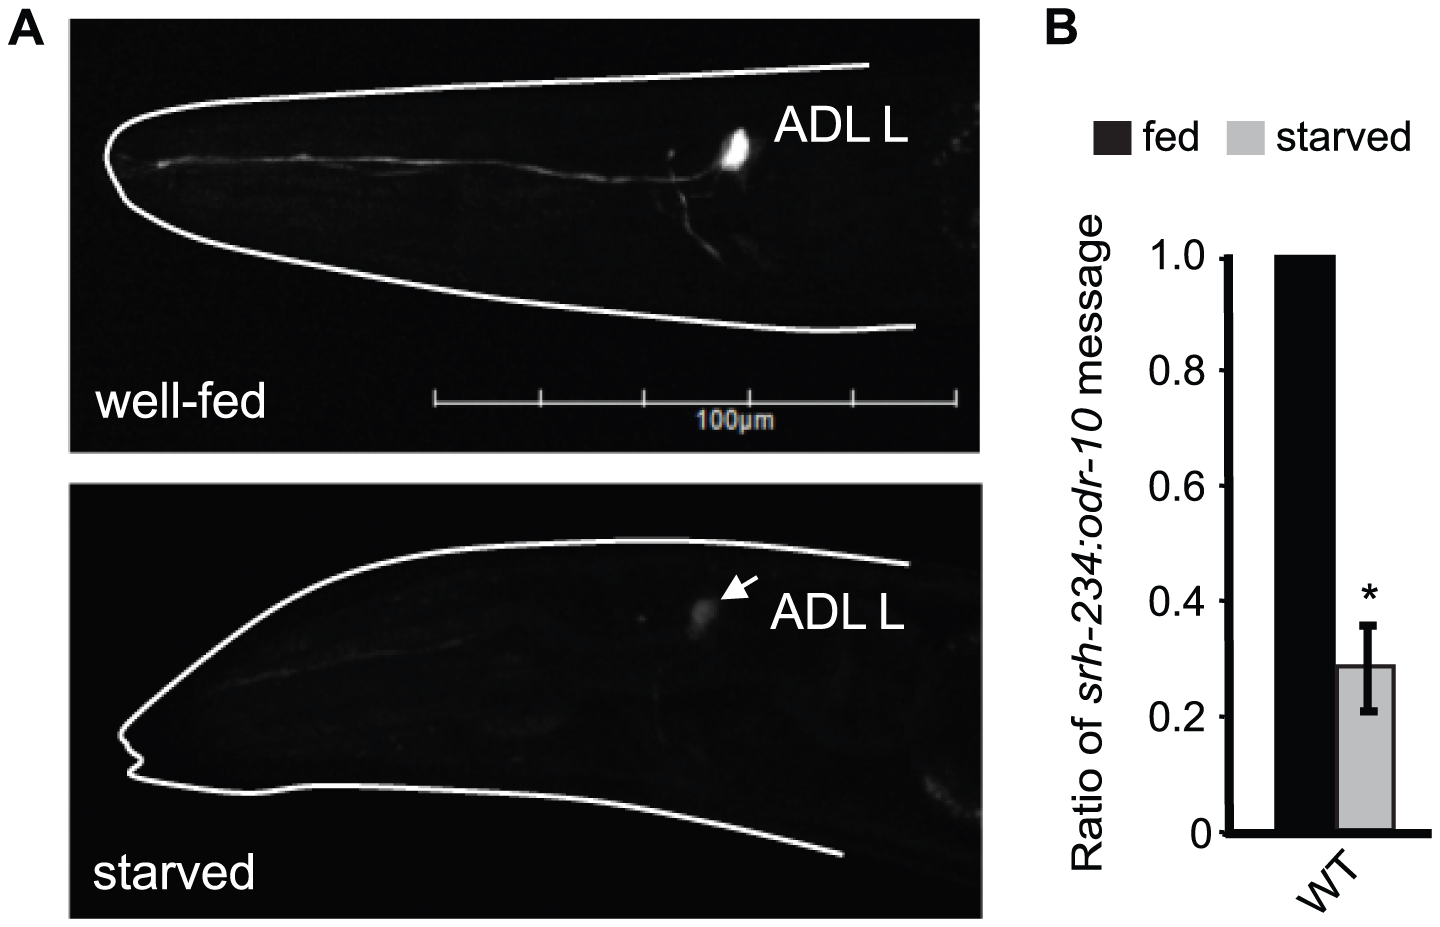 Starvation downregulates the expression of <i>srh-234</i> in ADL neurons.